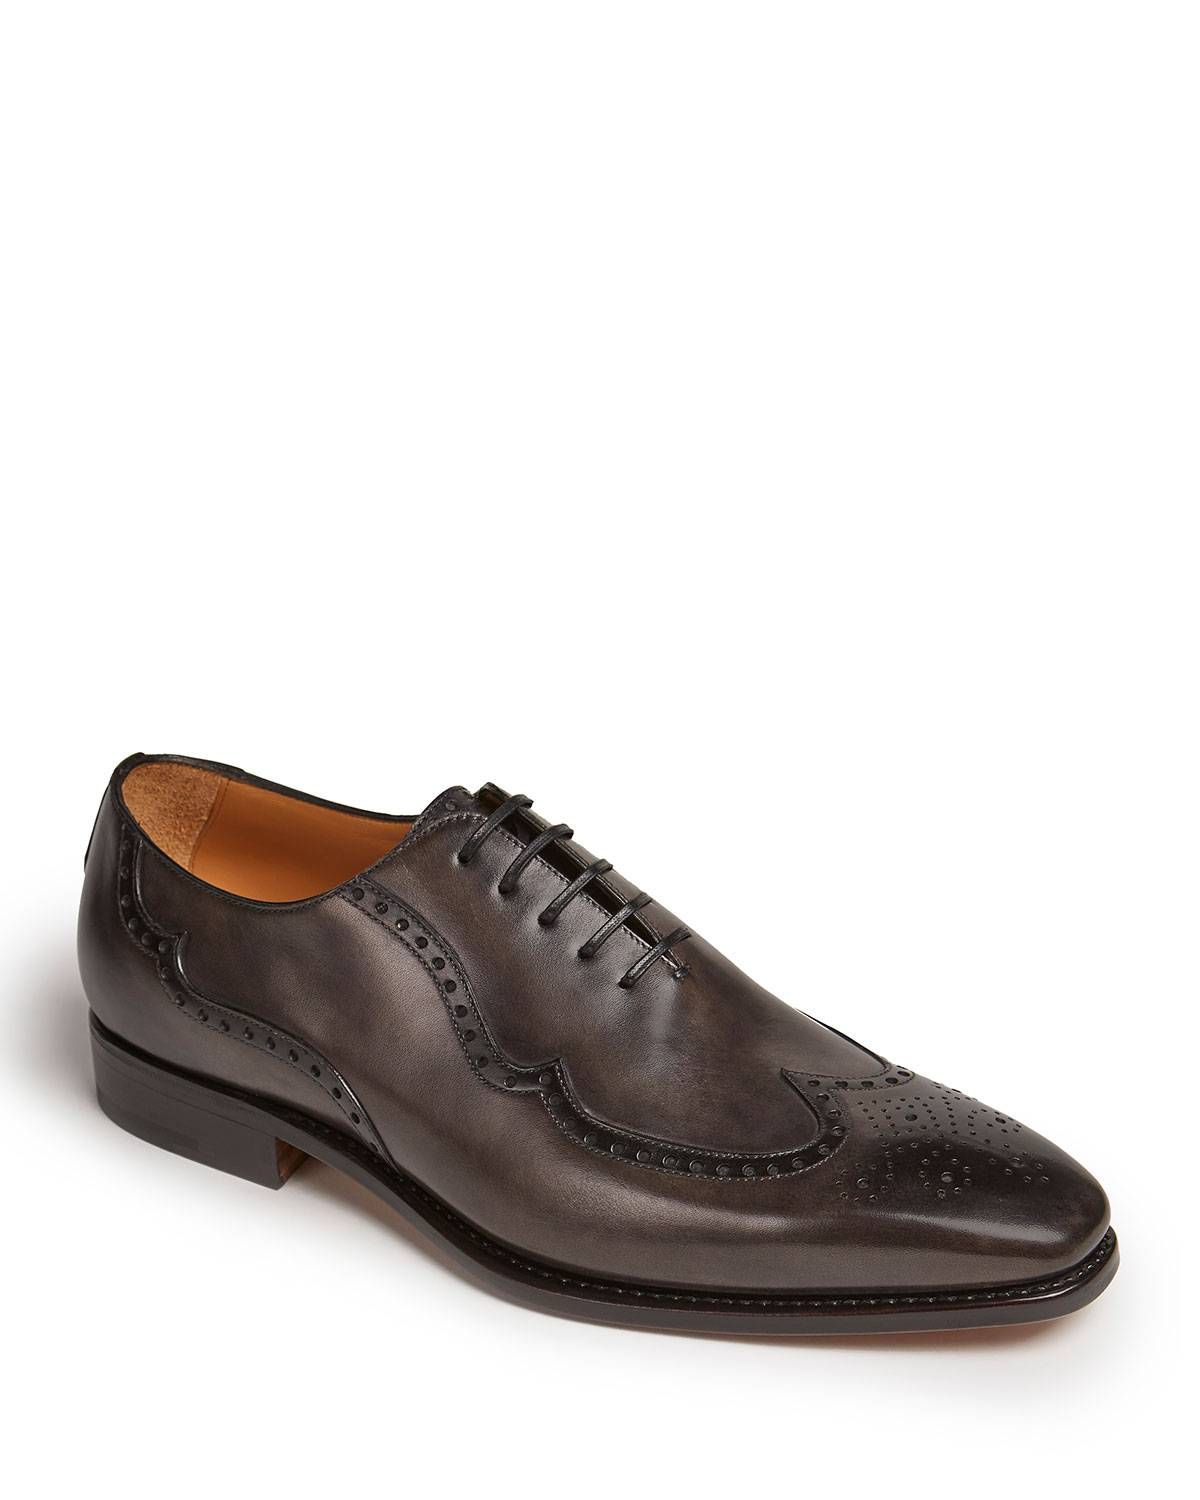 Paul Stuart Men's Milano Wing-Tip Hand-Burnished Leather Oxford Shoes - Size: 8.5D